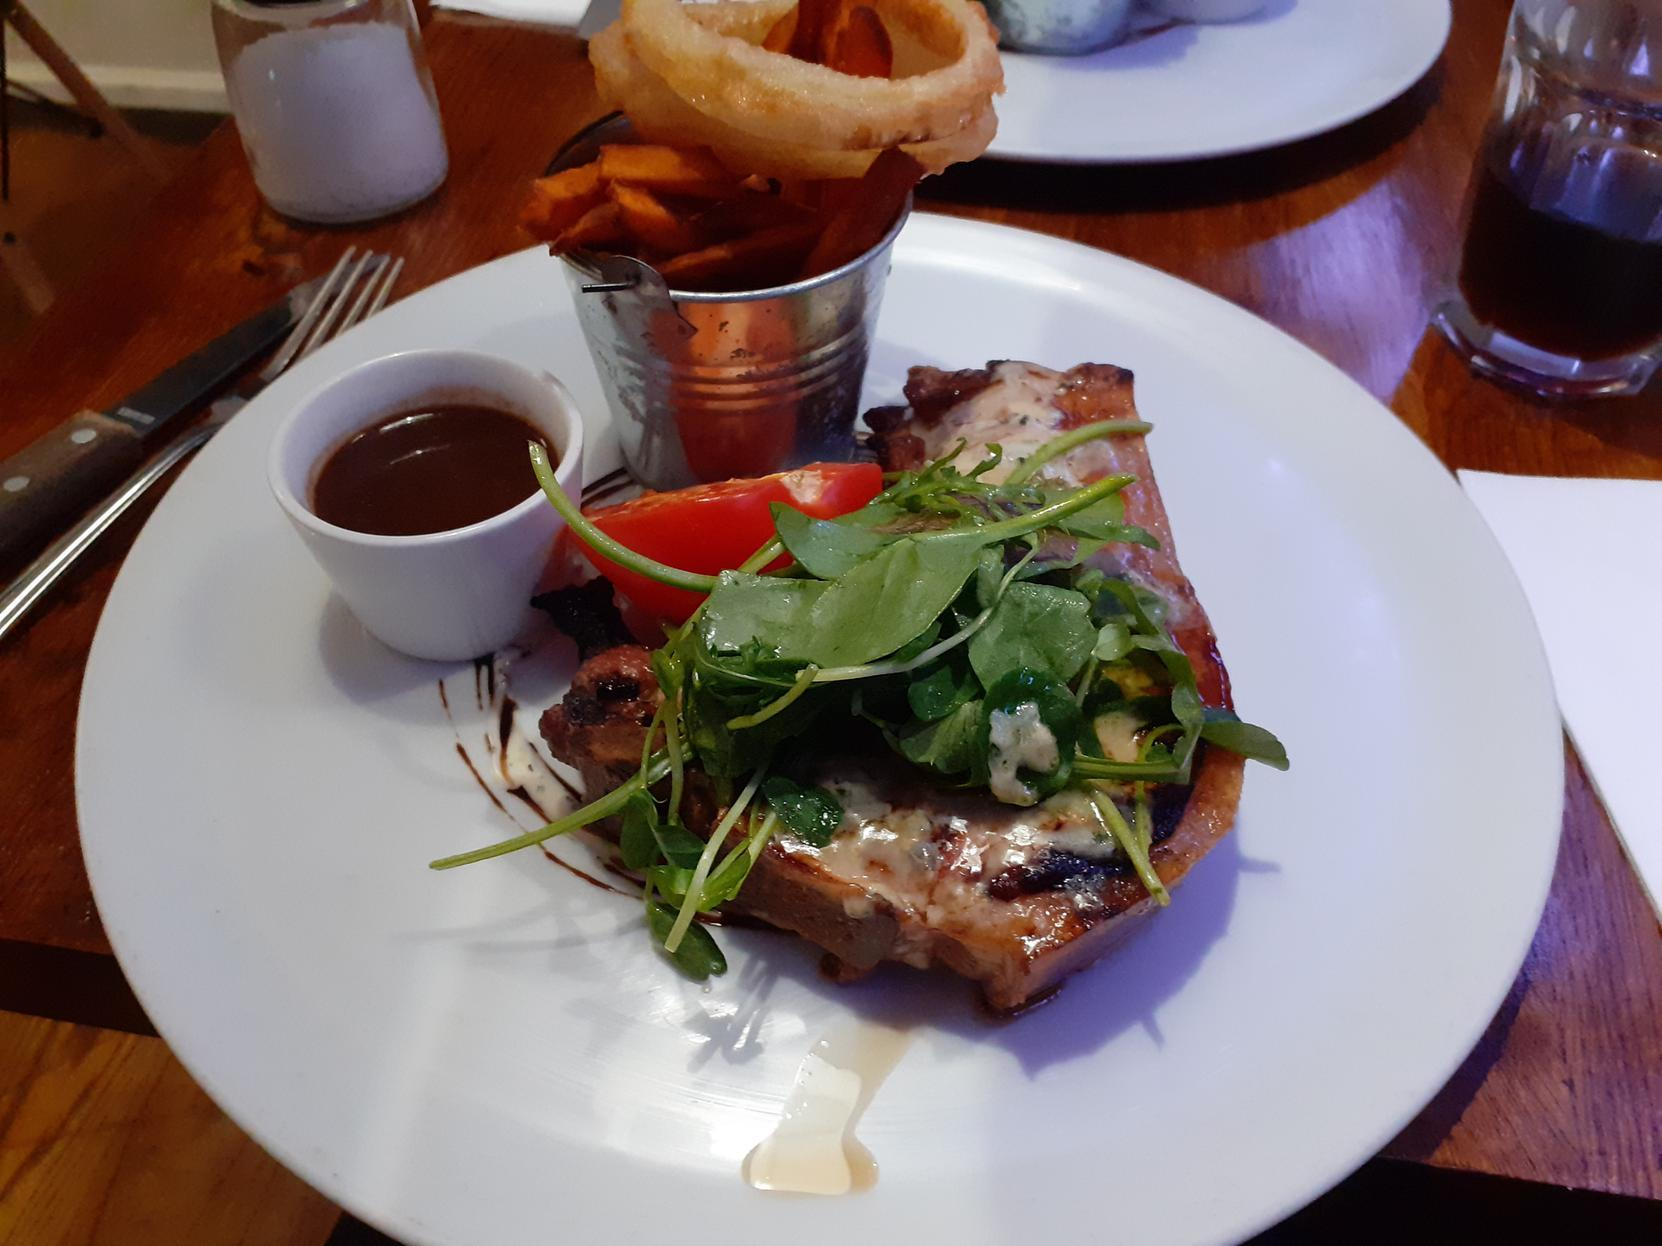 Review: La Rue, Saltaire - 'so nice it was annoying'